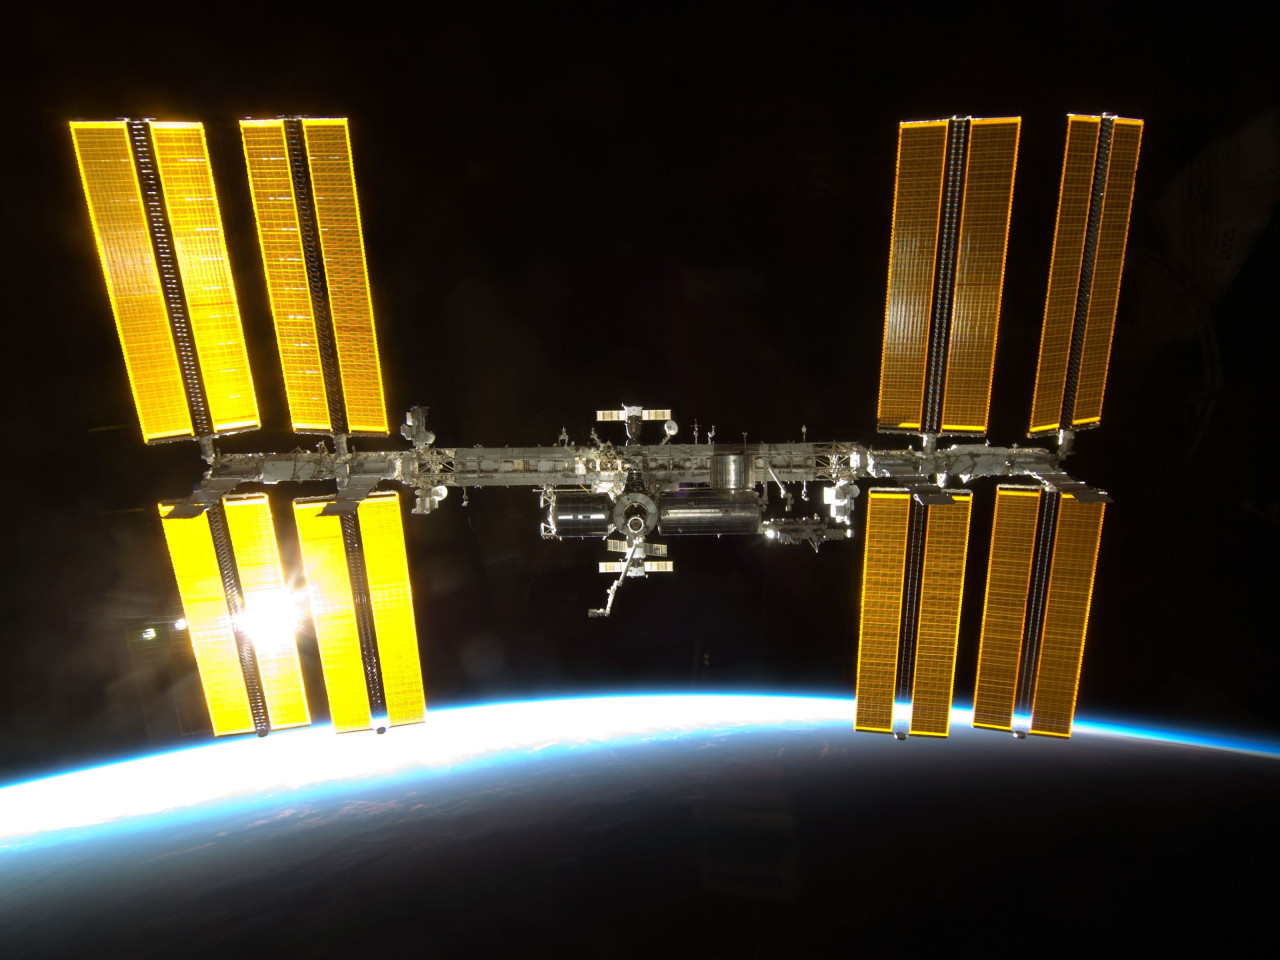 International Space Station wallpaper 1280x960